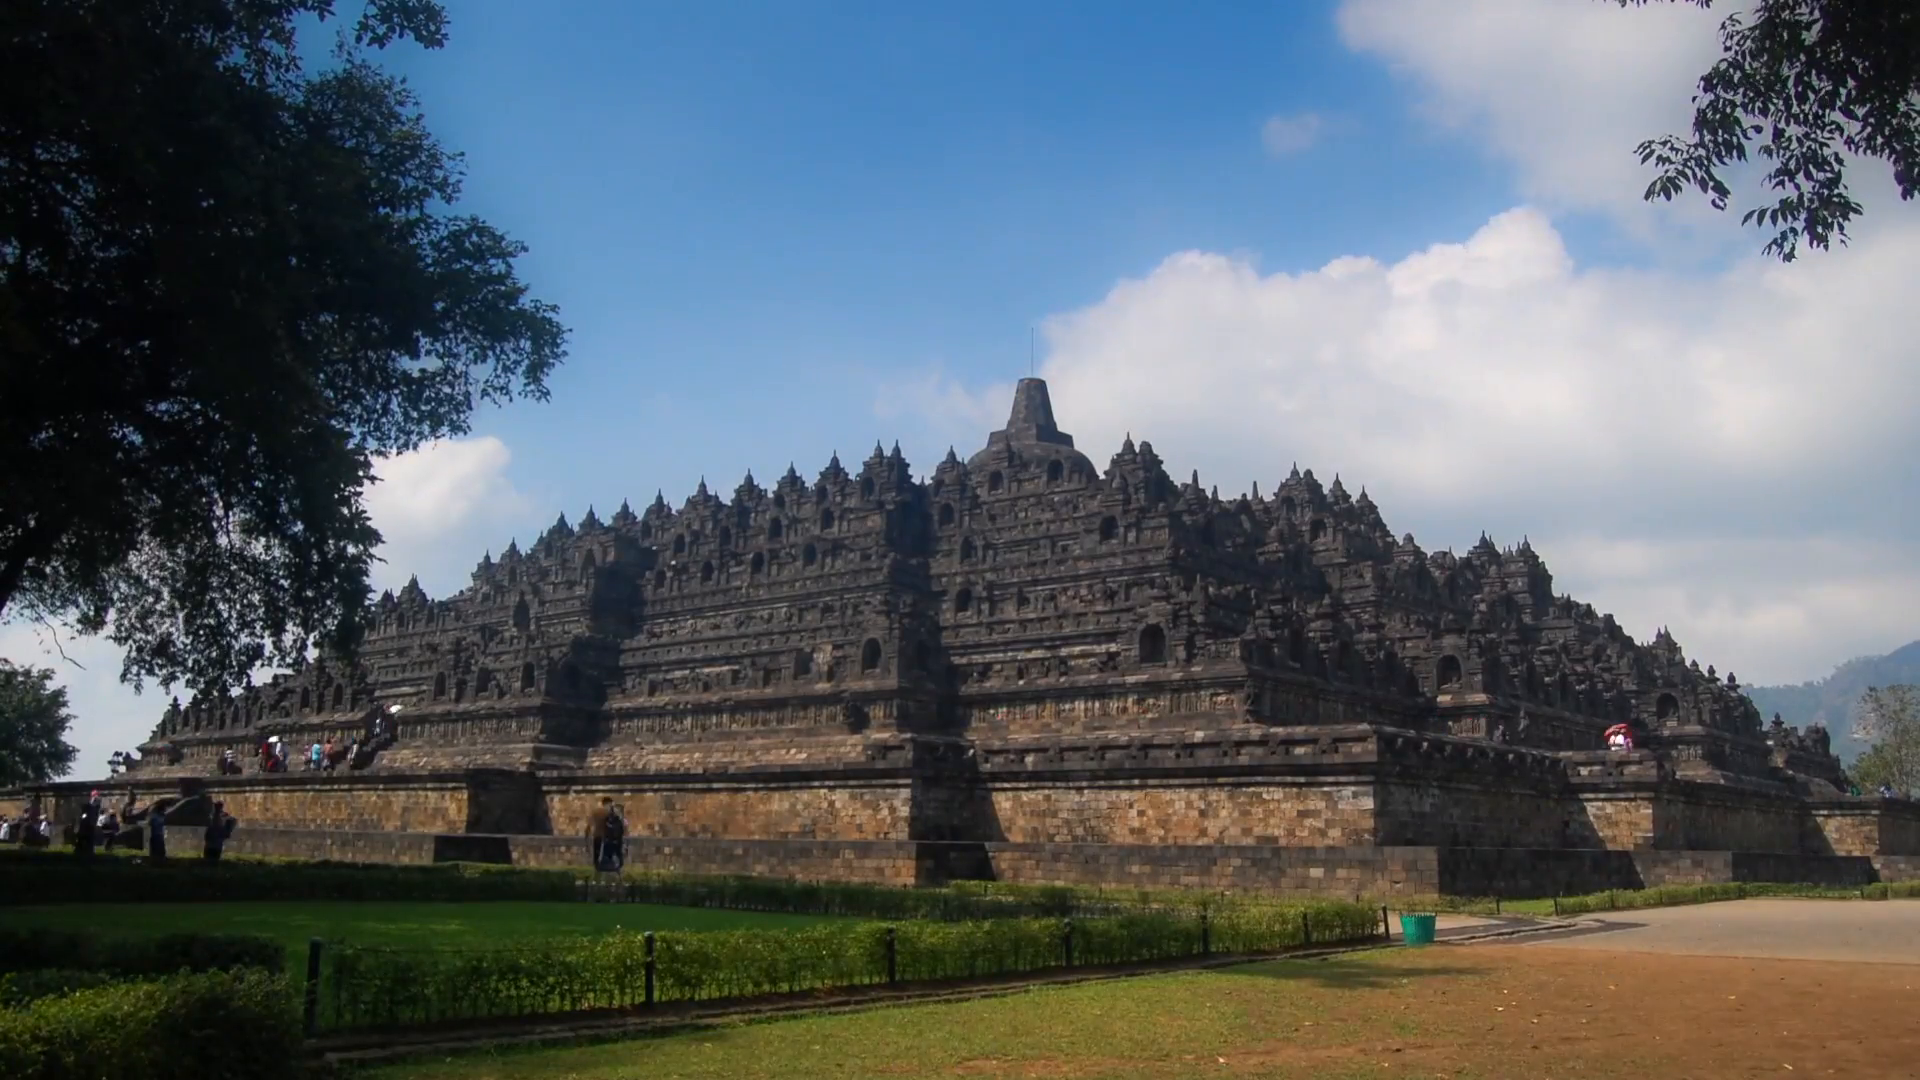 Time lapse of Borobudur Temple, Central Java, Indonesia. Stock Video  Footage.